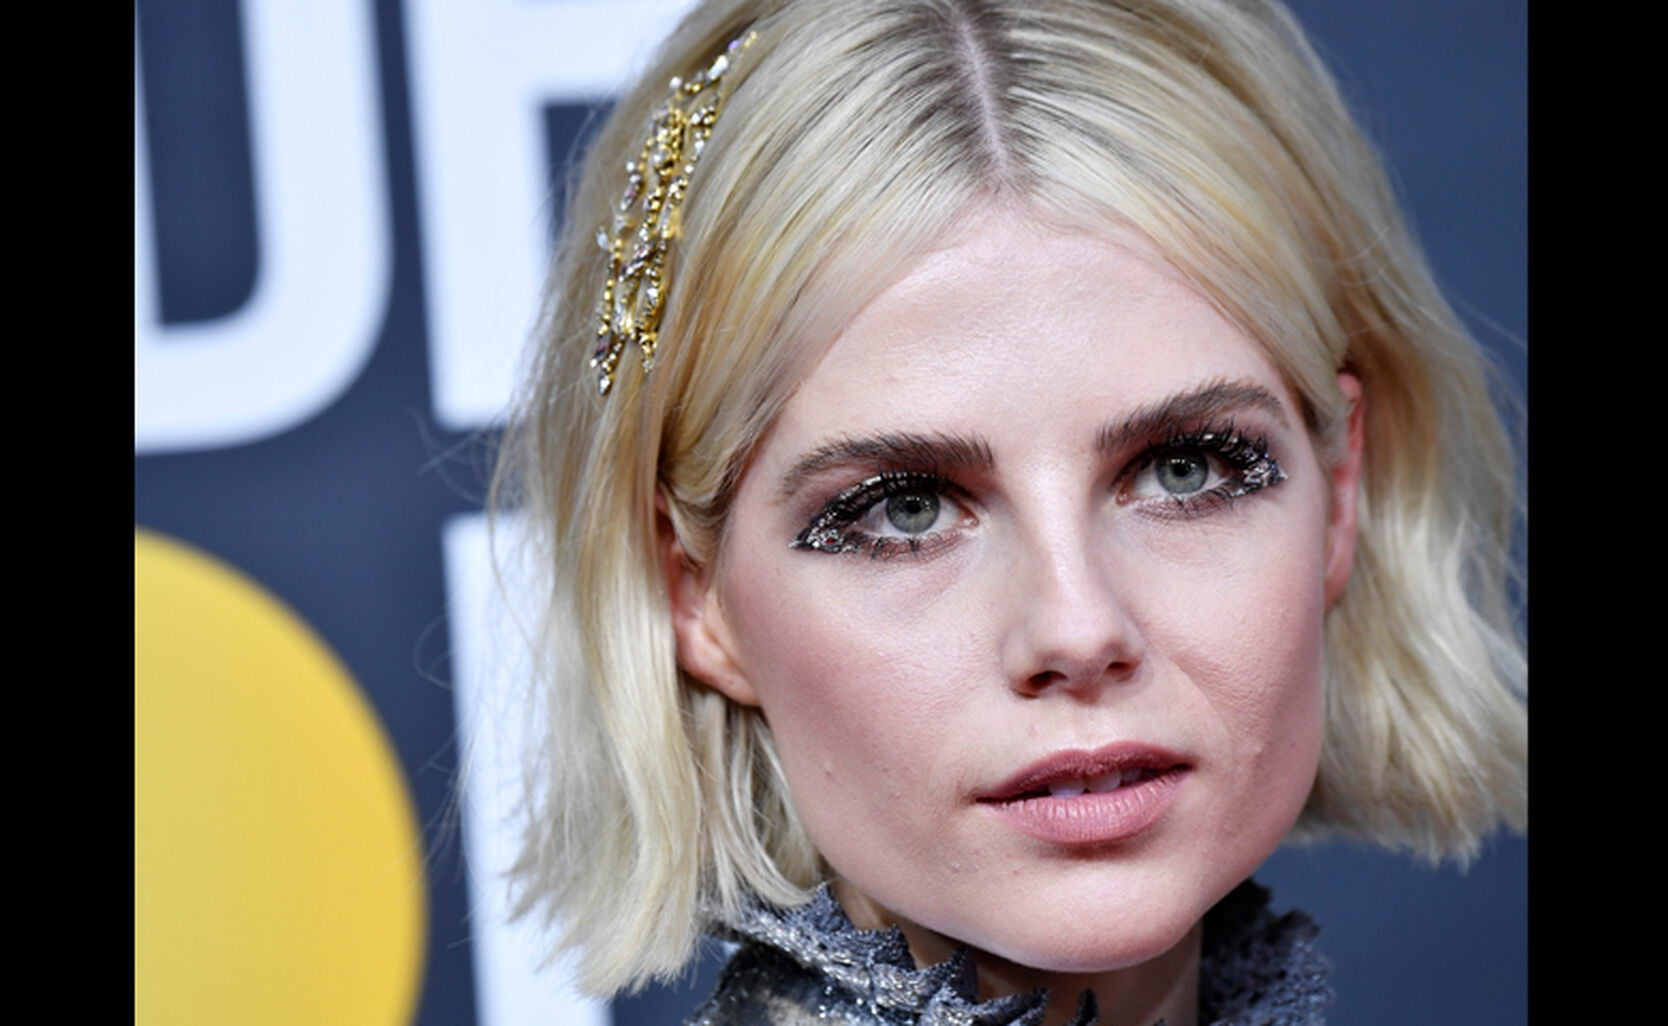 Lucy Boynton at the Globes